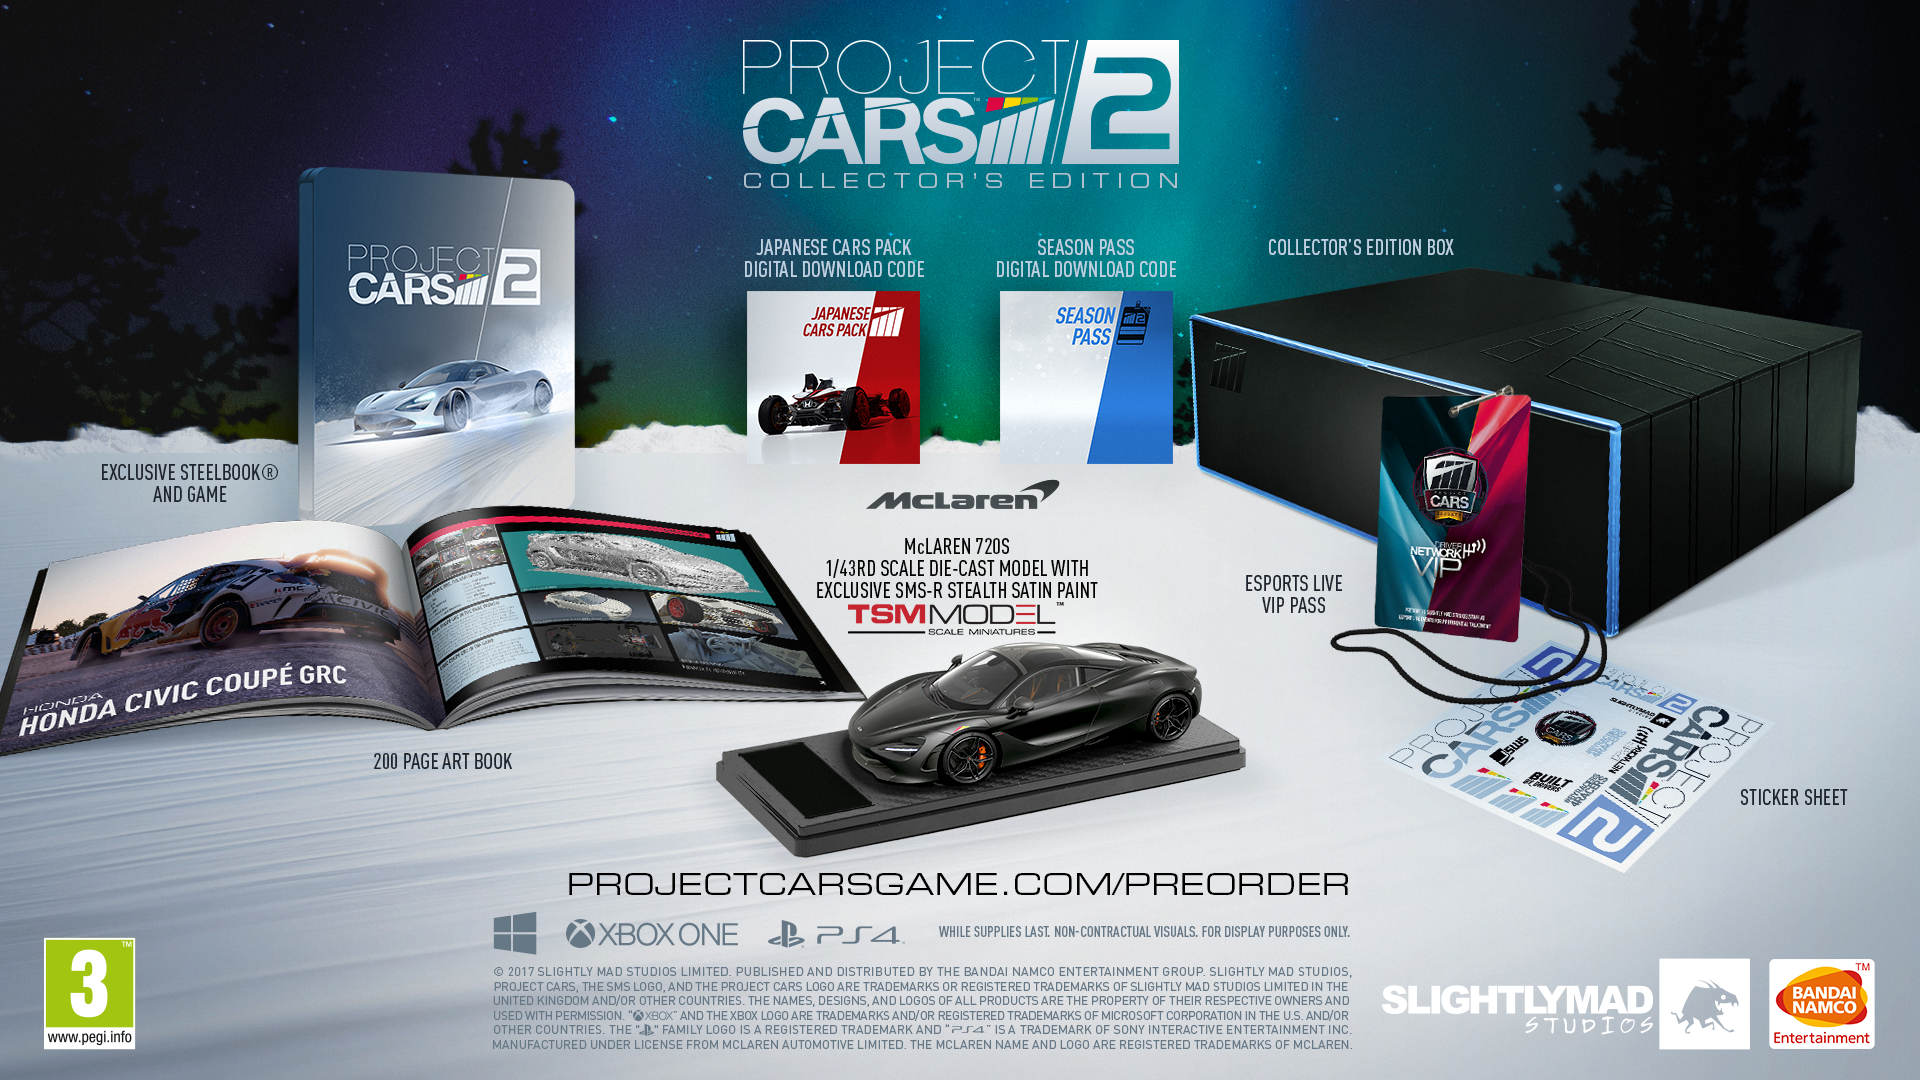 Svelate le Edizioni Speciali di Project Cars 2